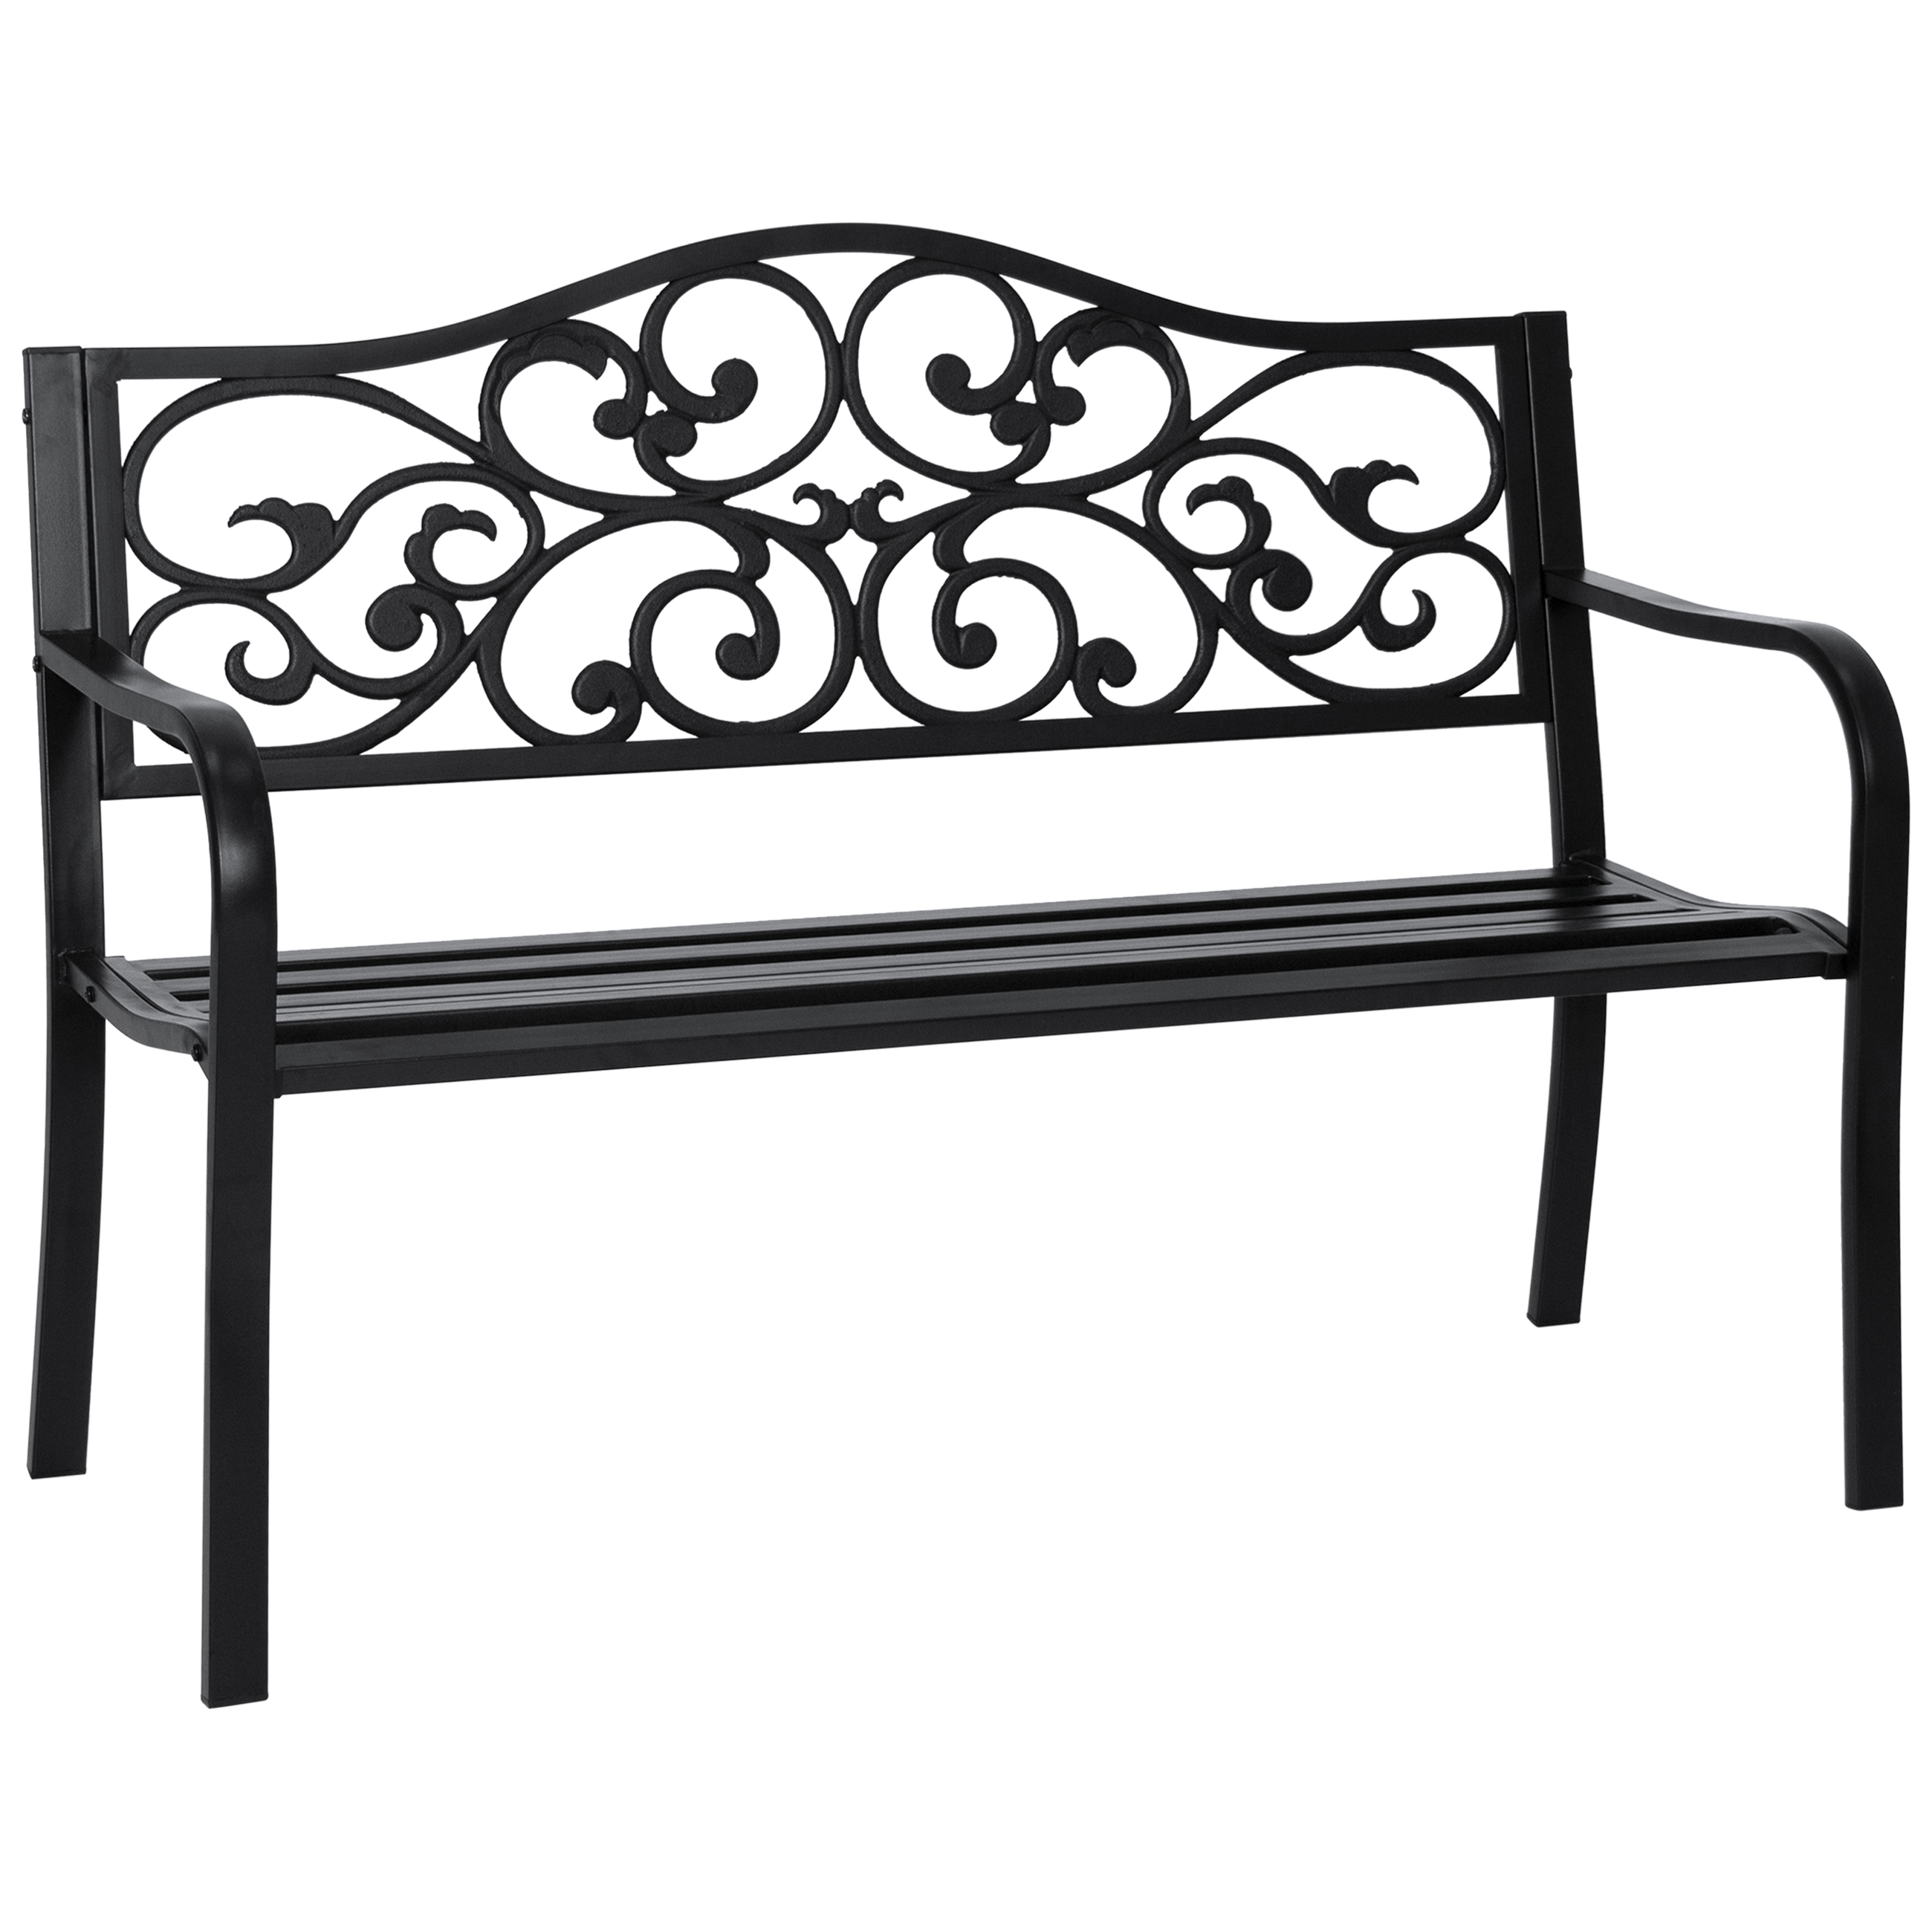 Best Choice Products Classic Metal Patio Garden Bench w/ Decorative Floral Scroll Design - Black